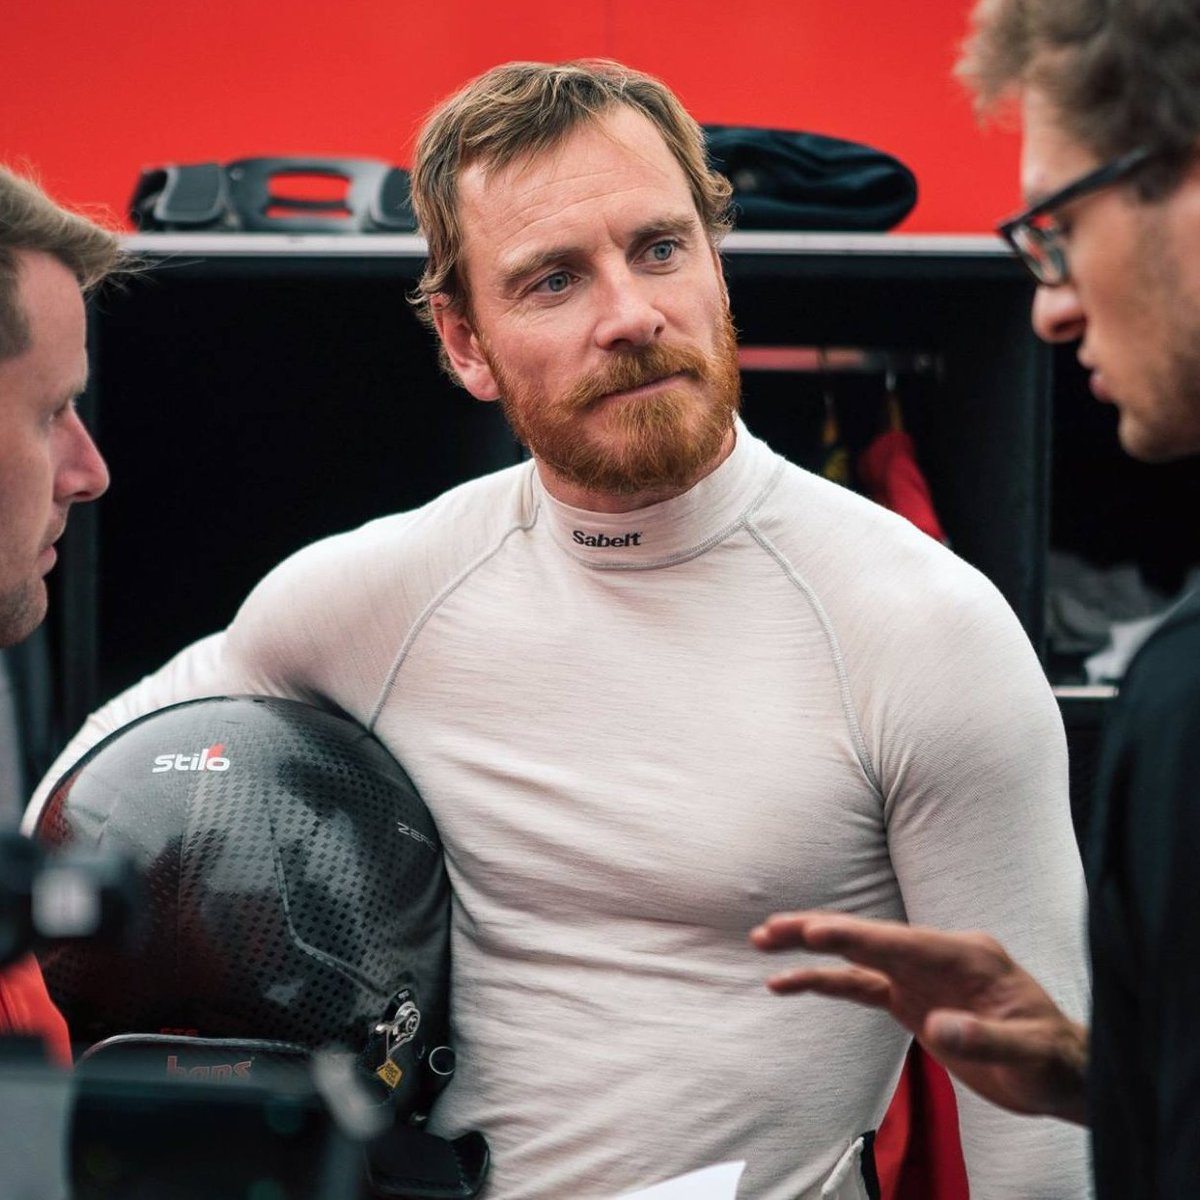 Ferrari, Porsche and Rally Of The Lakes  #MichaelFassbender pic.twitter.com/s5frftTtux